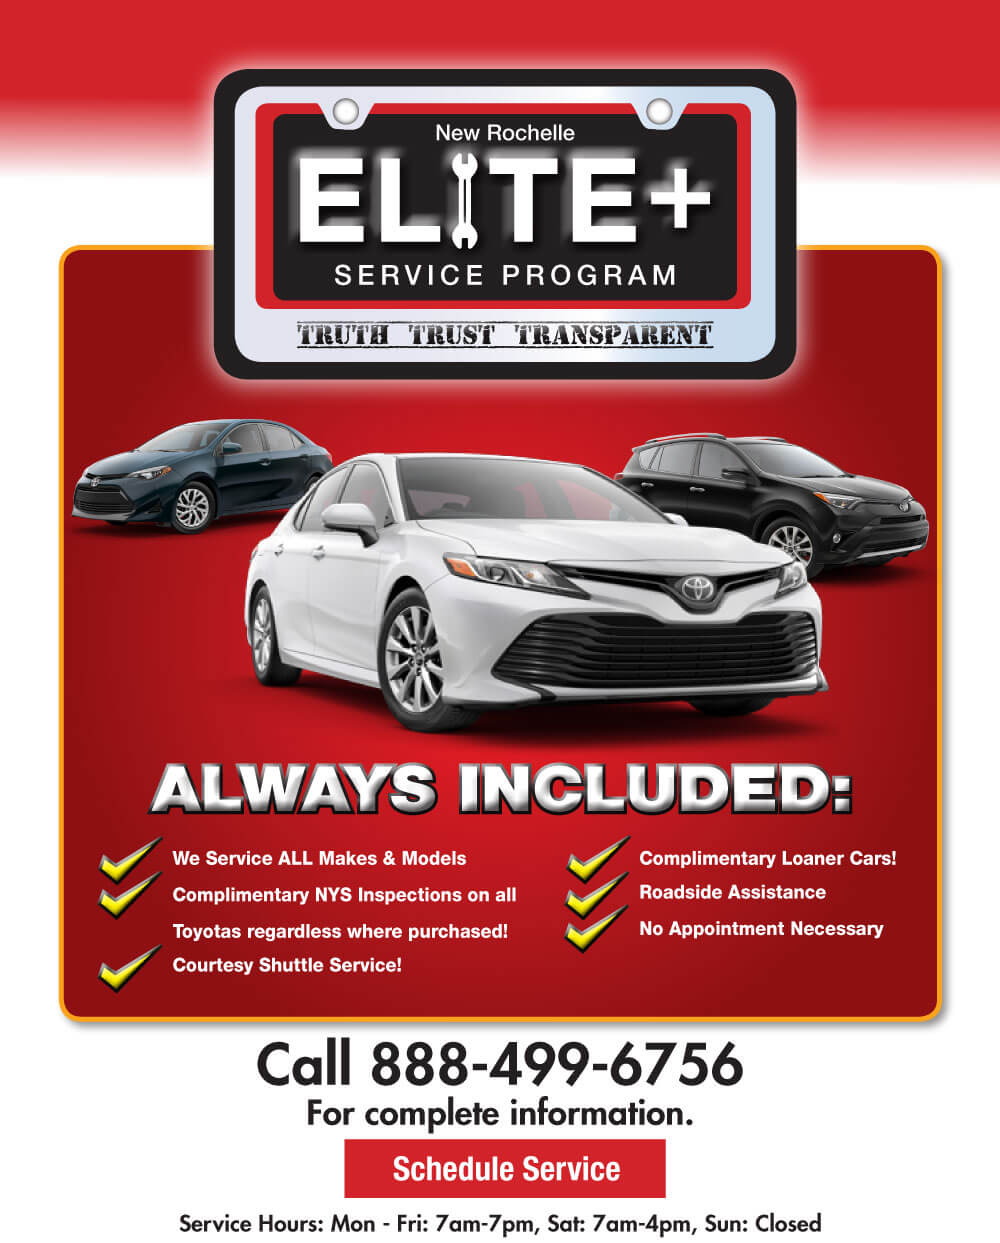 Elite Service Program, New Rochelle Toyota